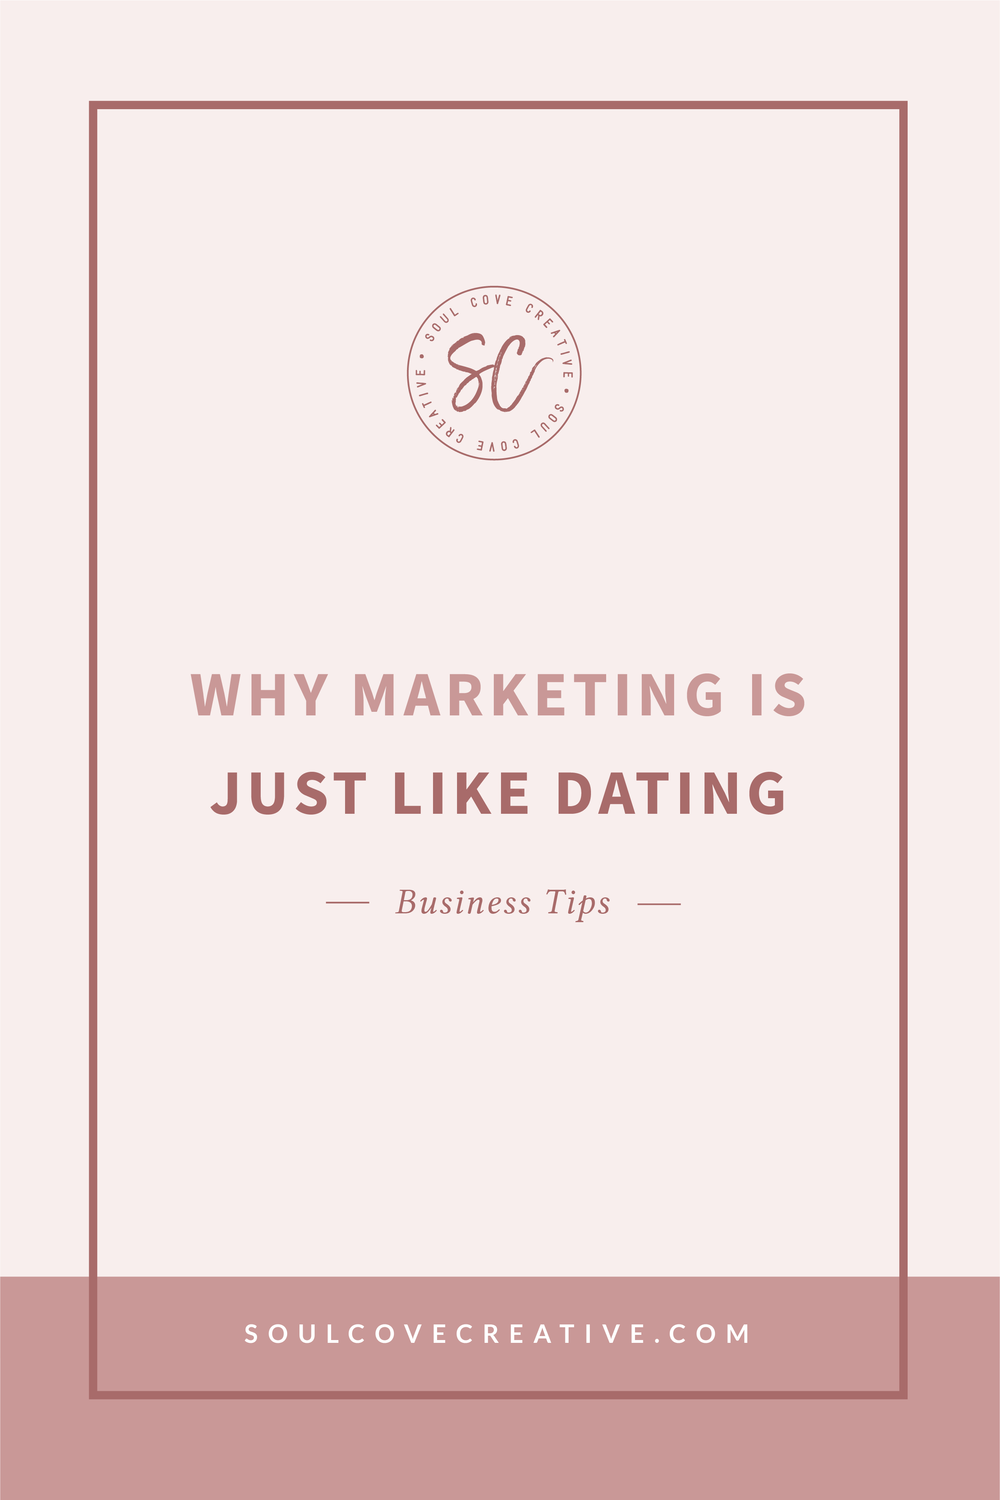 Why Marketing is like Dating